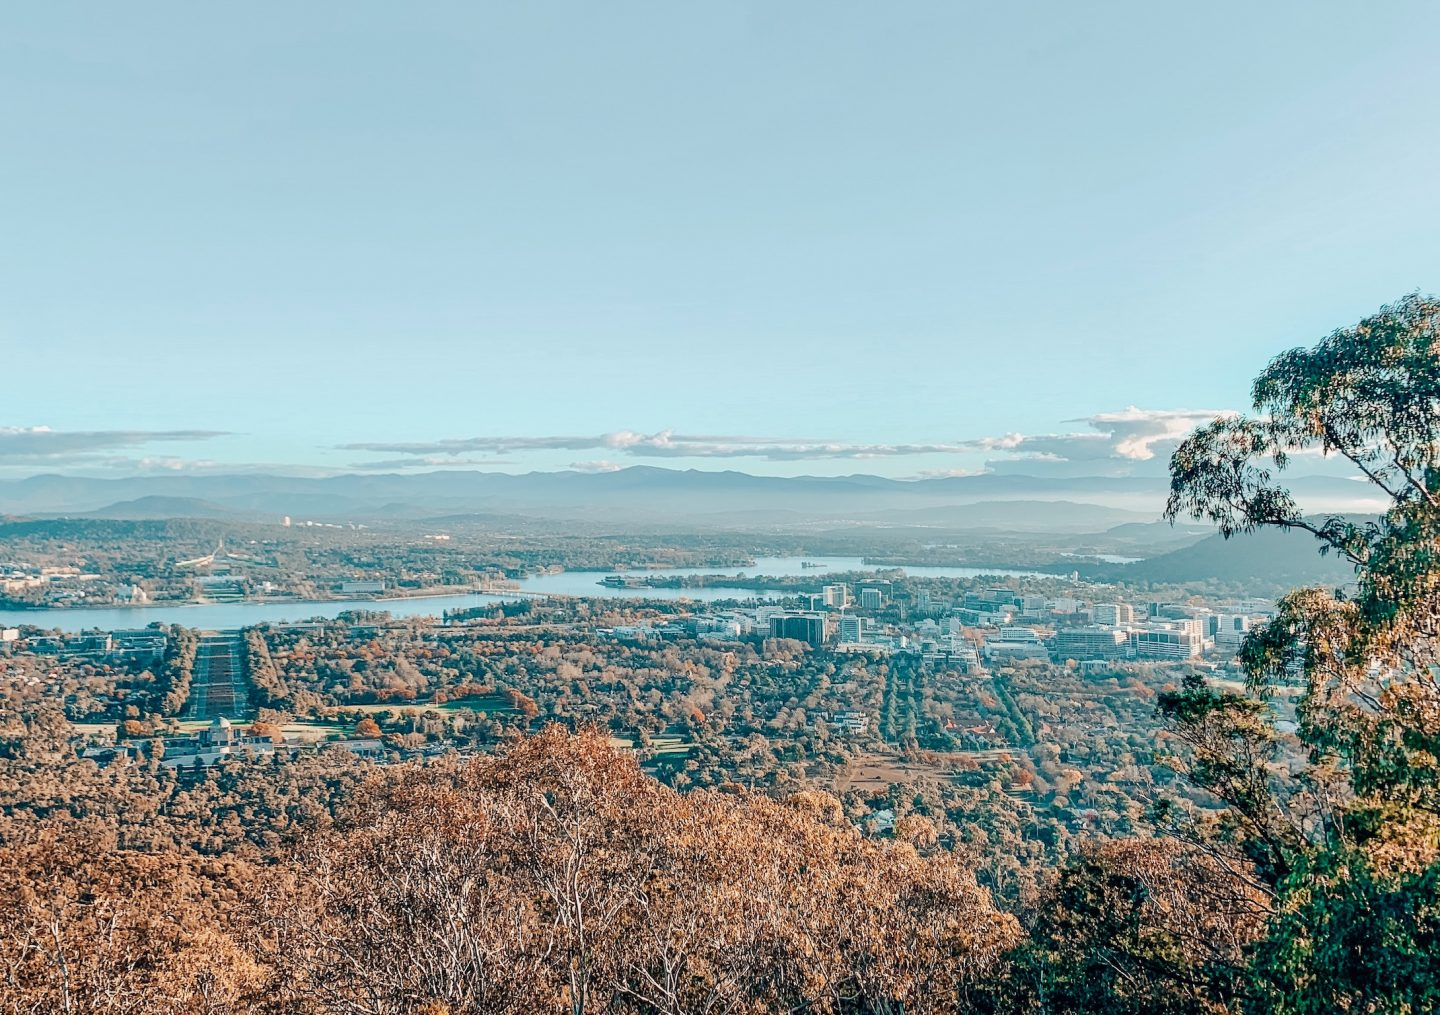 View overlooking Canberra